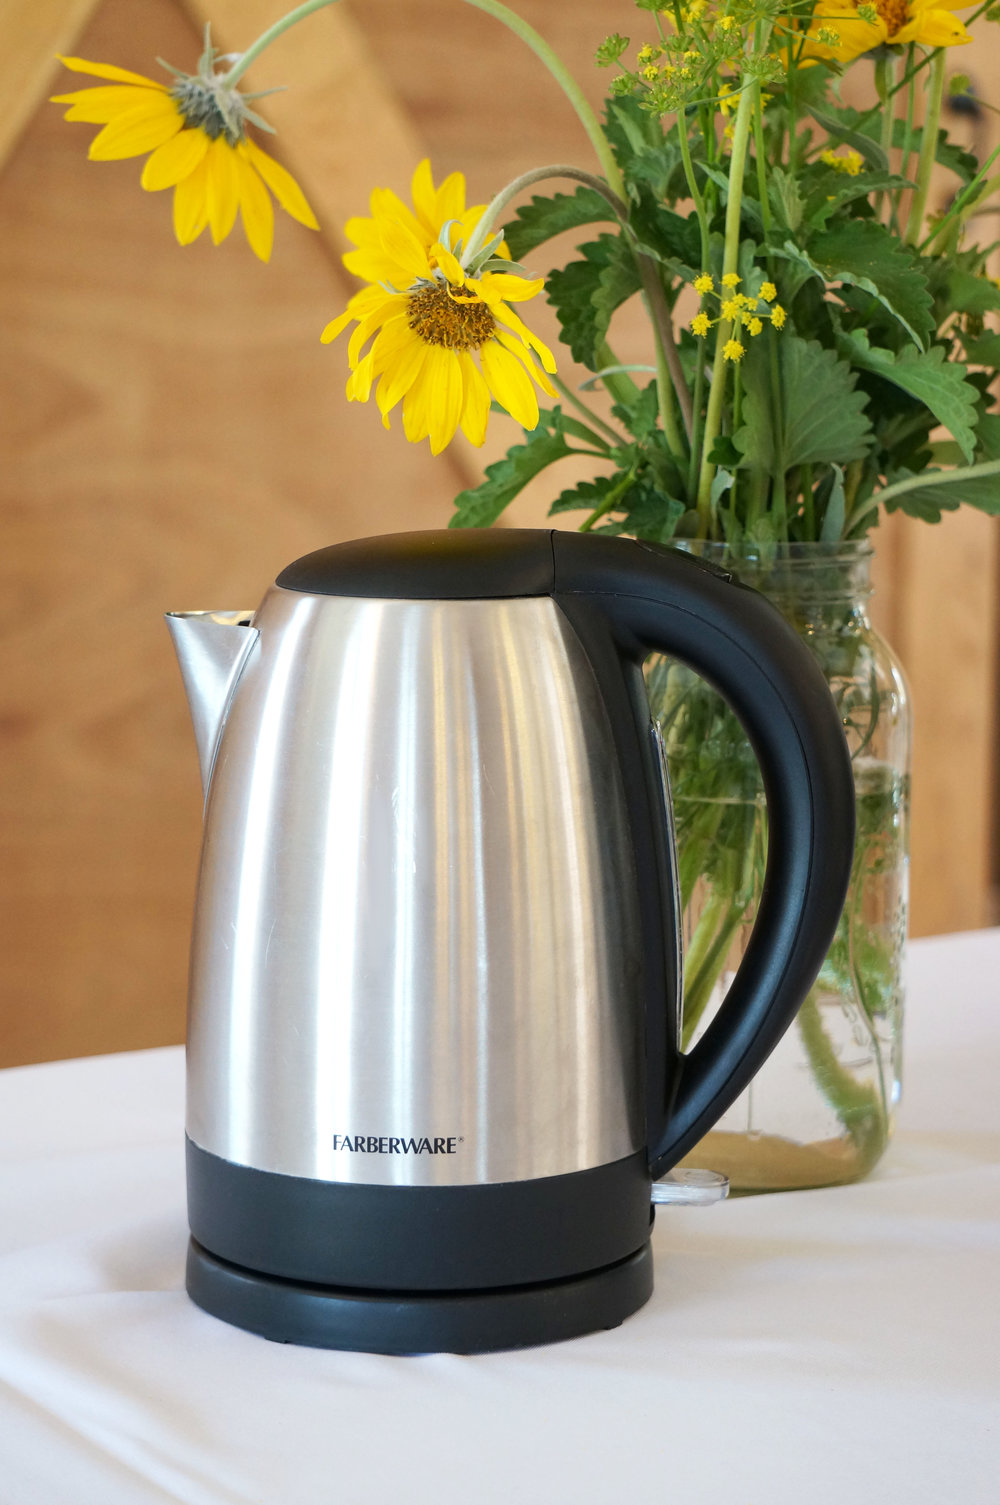 Electric Tea Kettle - $5 (1 avail.)